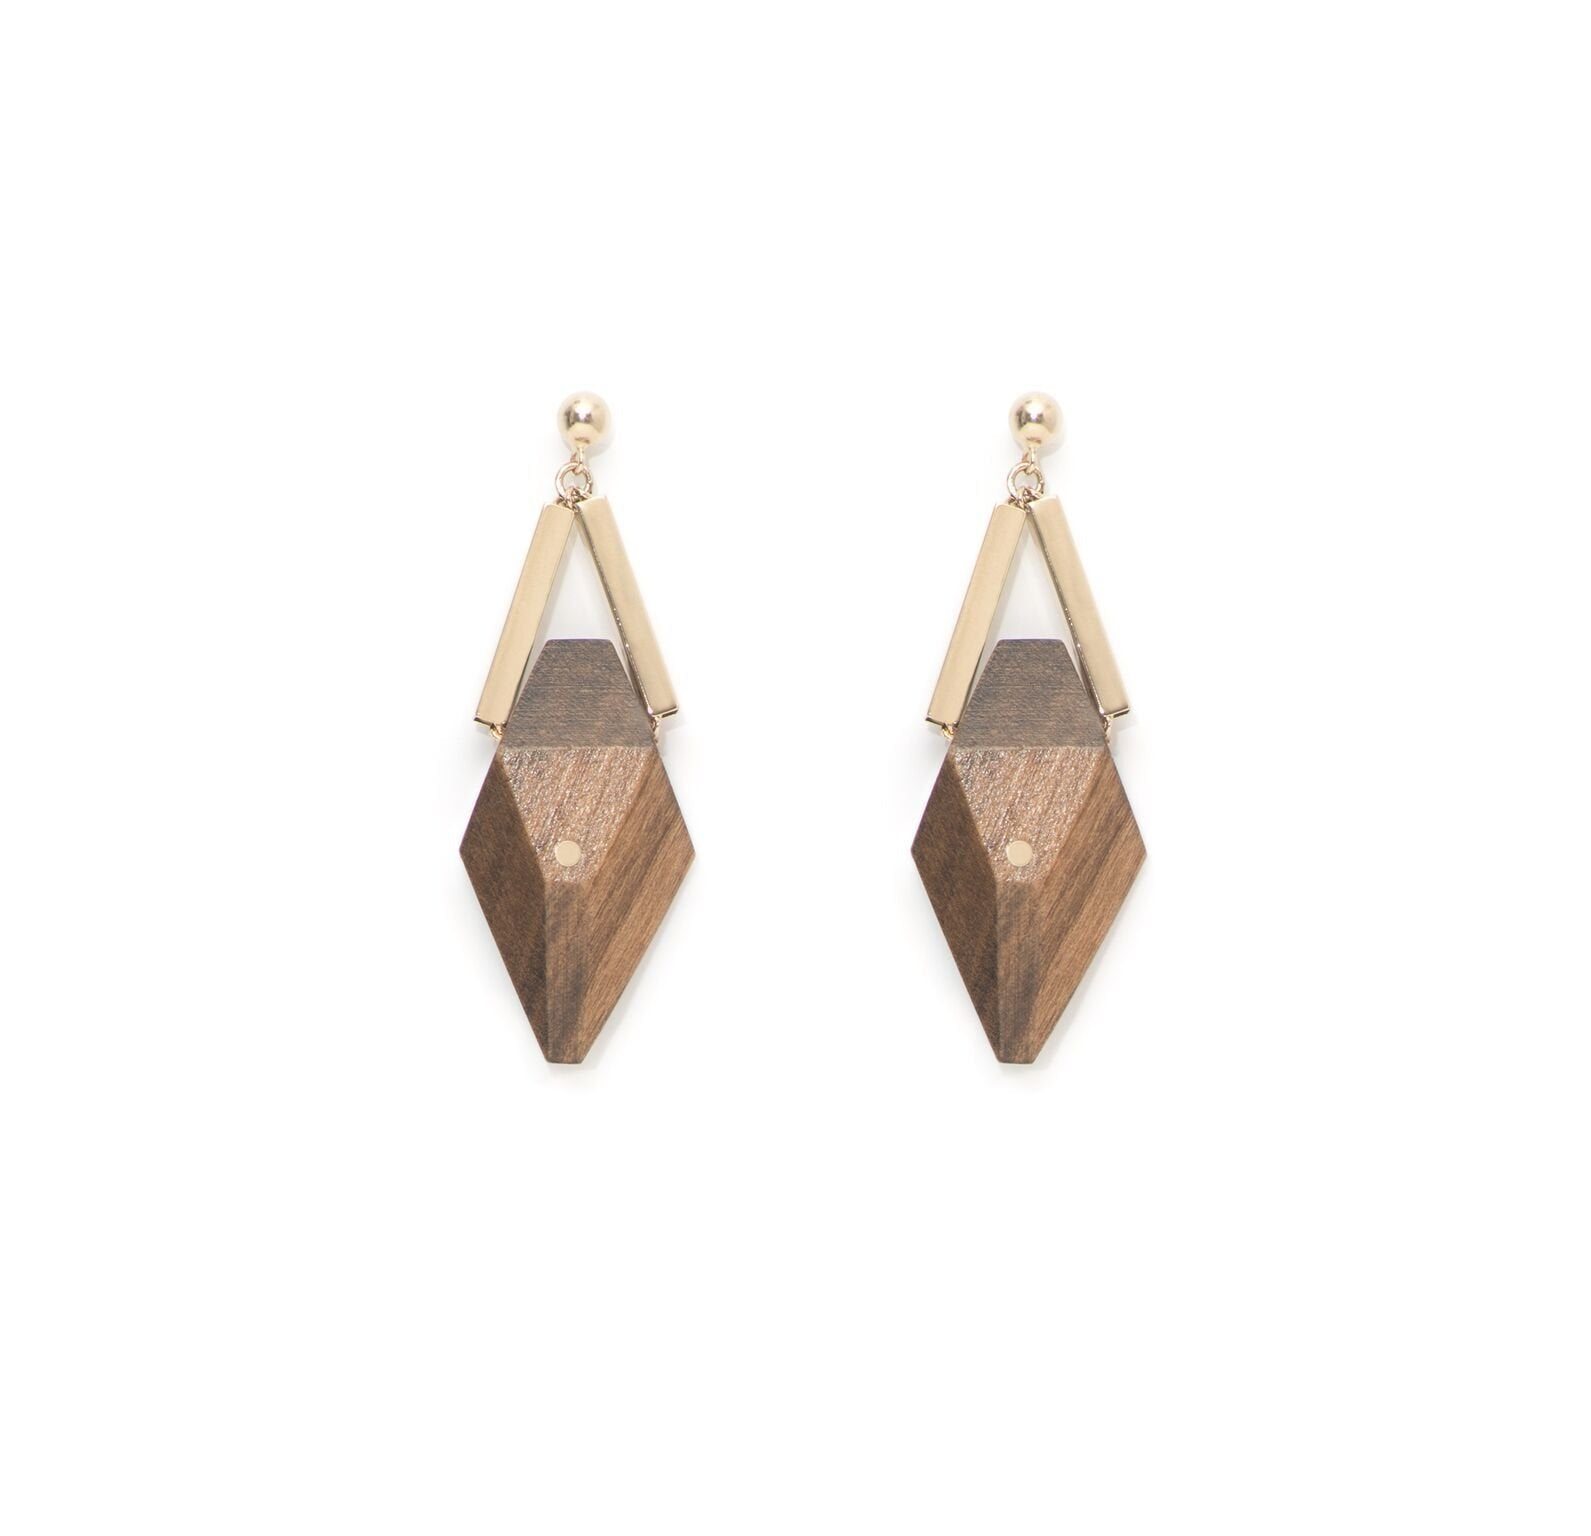 Pan Gray Champagne Earrings - The Clothing LoungeSalomé Charly